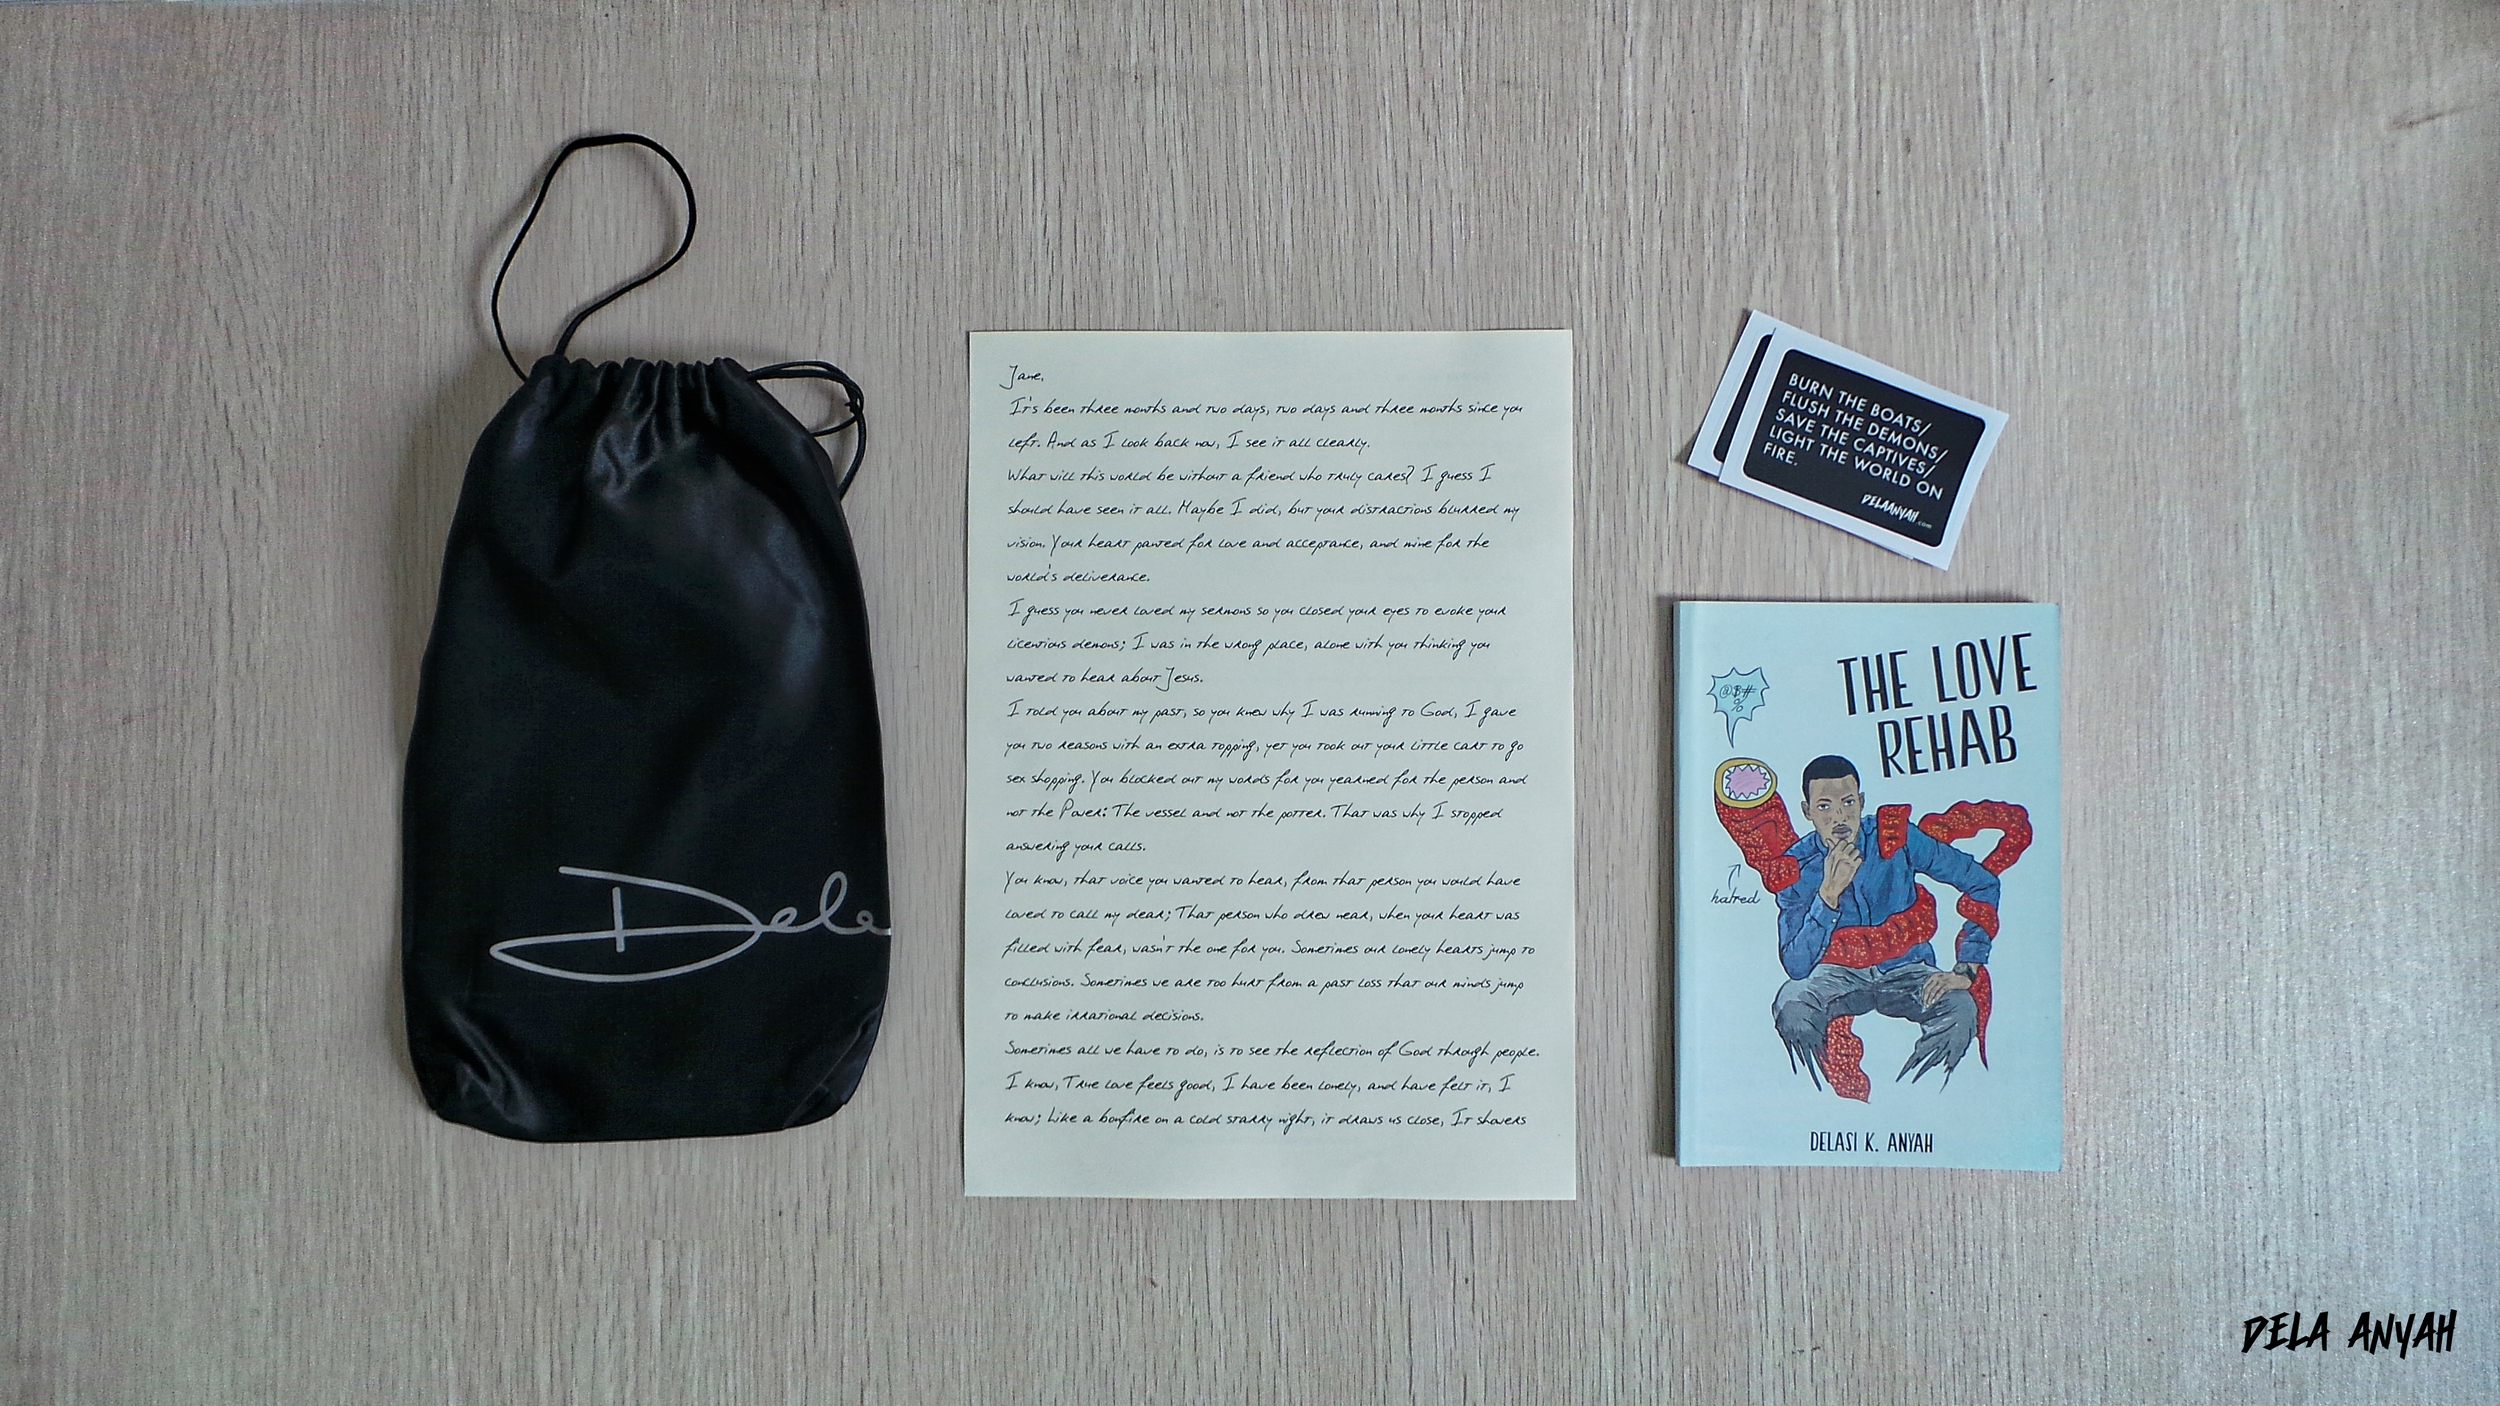 This package includes: The Love Rehab Book, two stickers and a letter to Jane (the protagonist) from her confidant.The Love Rehab is a poem that mainly centers ona cocotte named Jane;a member of a noxious cabal whose pursuit of freedom turned tragic after she severed ties with a fledgling preacher set out to rescue her. It's a short story filled with themes of religious conspiracy, a young adult's yearning for love and struggles with loneliness; vendetta against cocottes and sorceresses; drug overdose and death; the realities of Christian Evangelism, repentance and Jesus' Saving Grace and love for mankind.